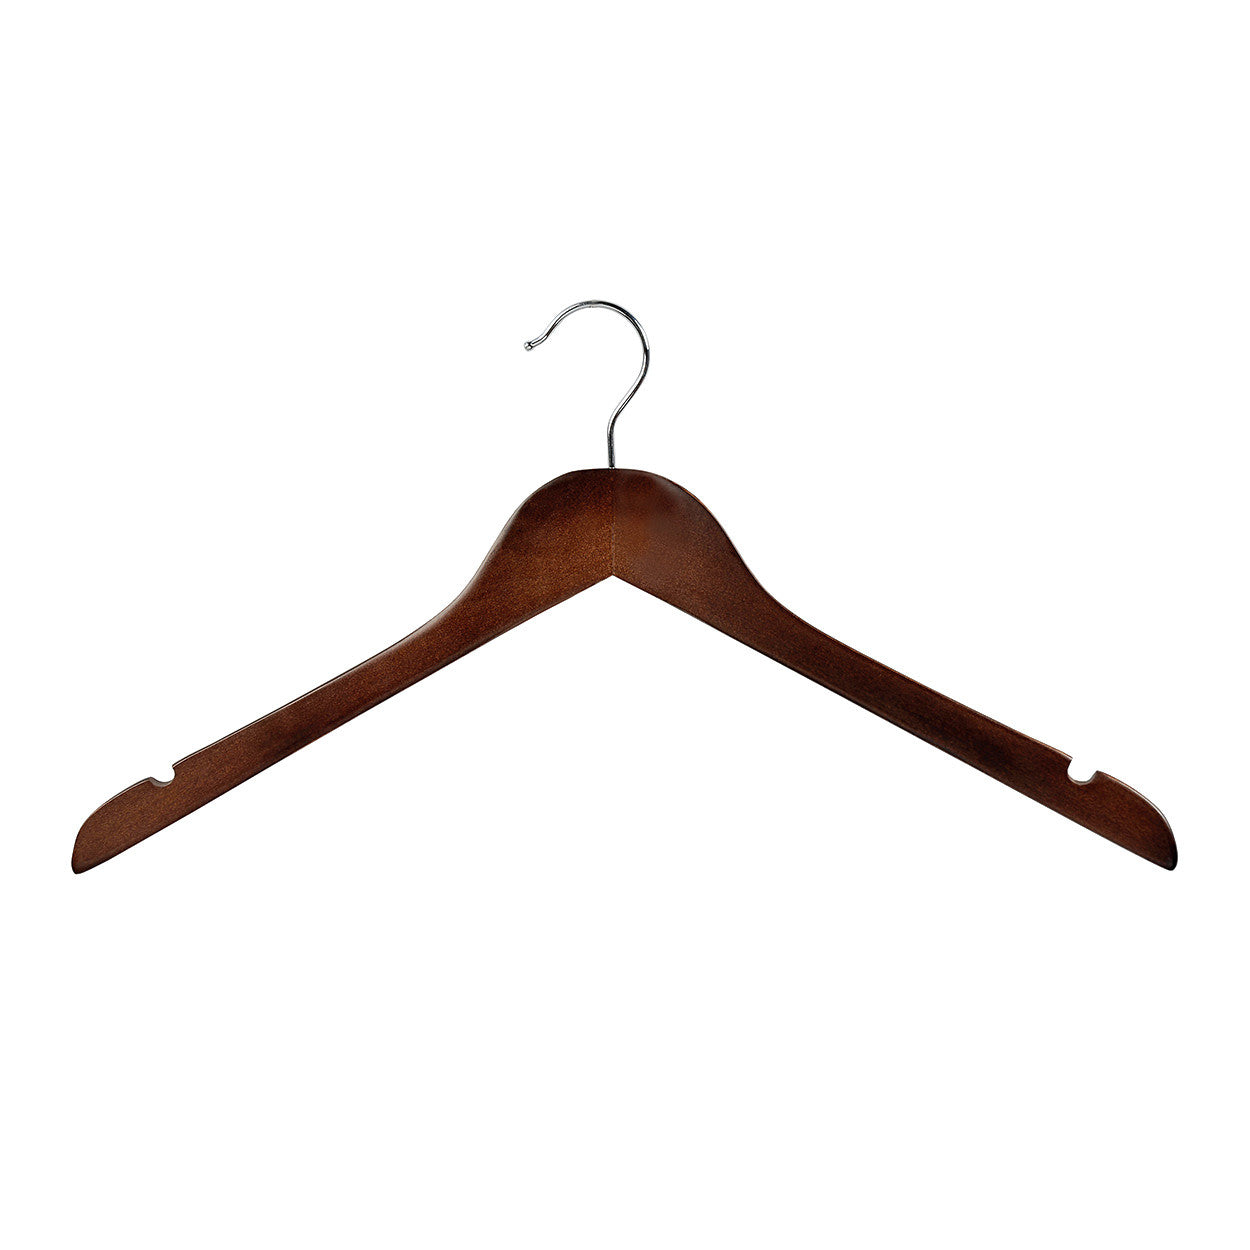 Wenge Wooden hanger wishbone with notches 440W x 14mm Thick (Bundle of 10) H2628WE-10